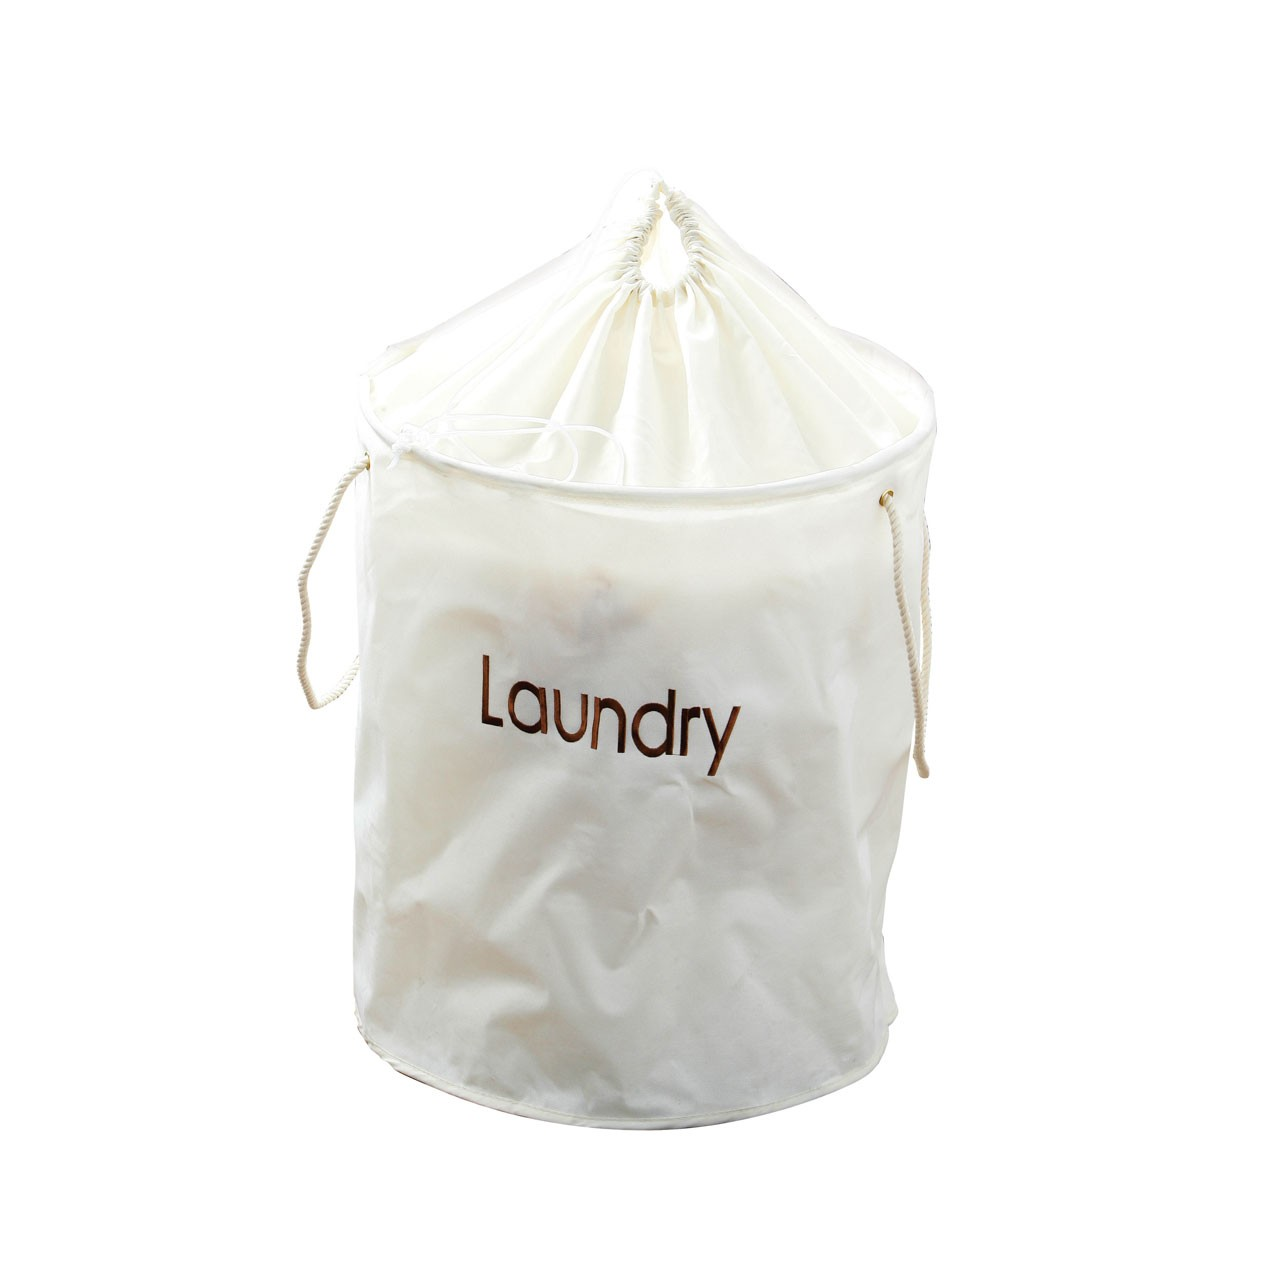 Prime Furnishing Polyester Laundry Bag, Drawstring Top - Cream